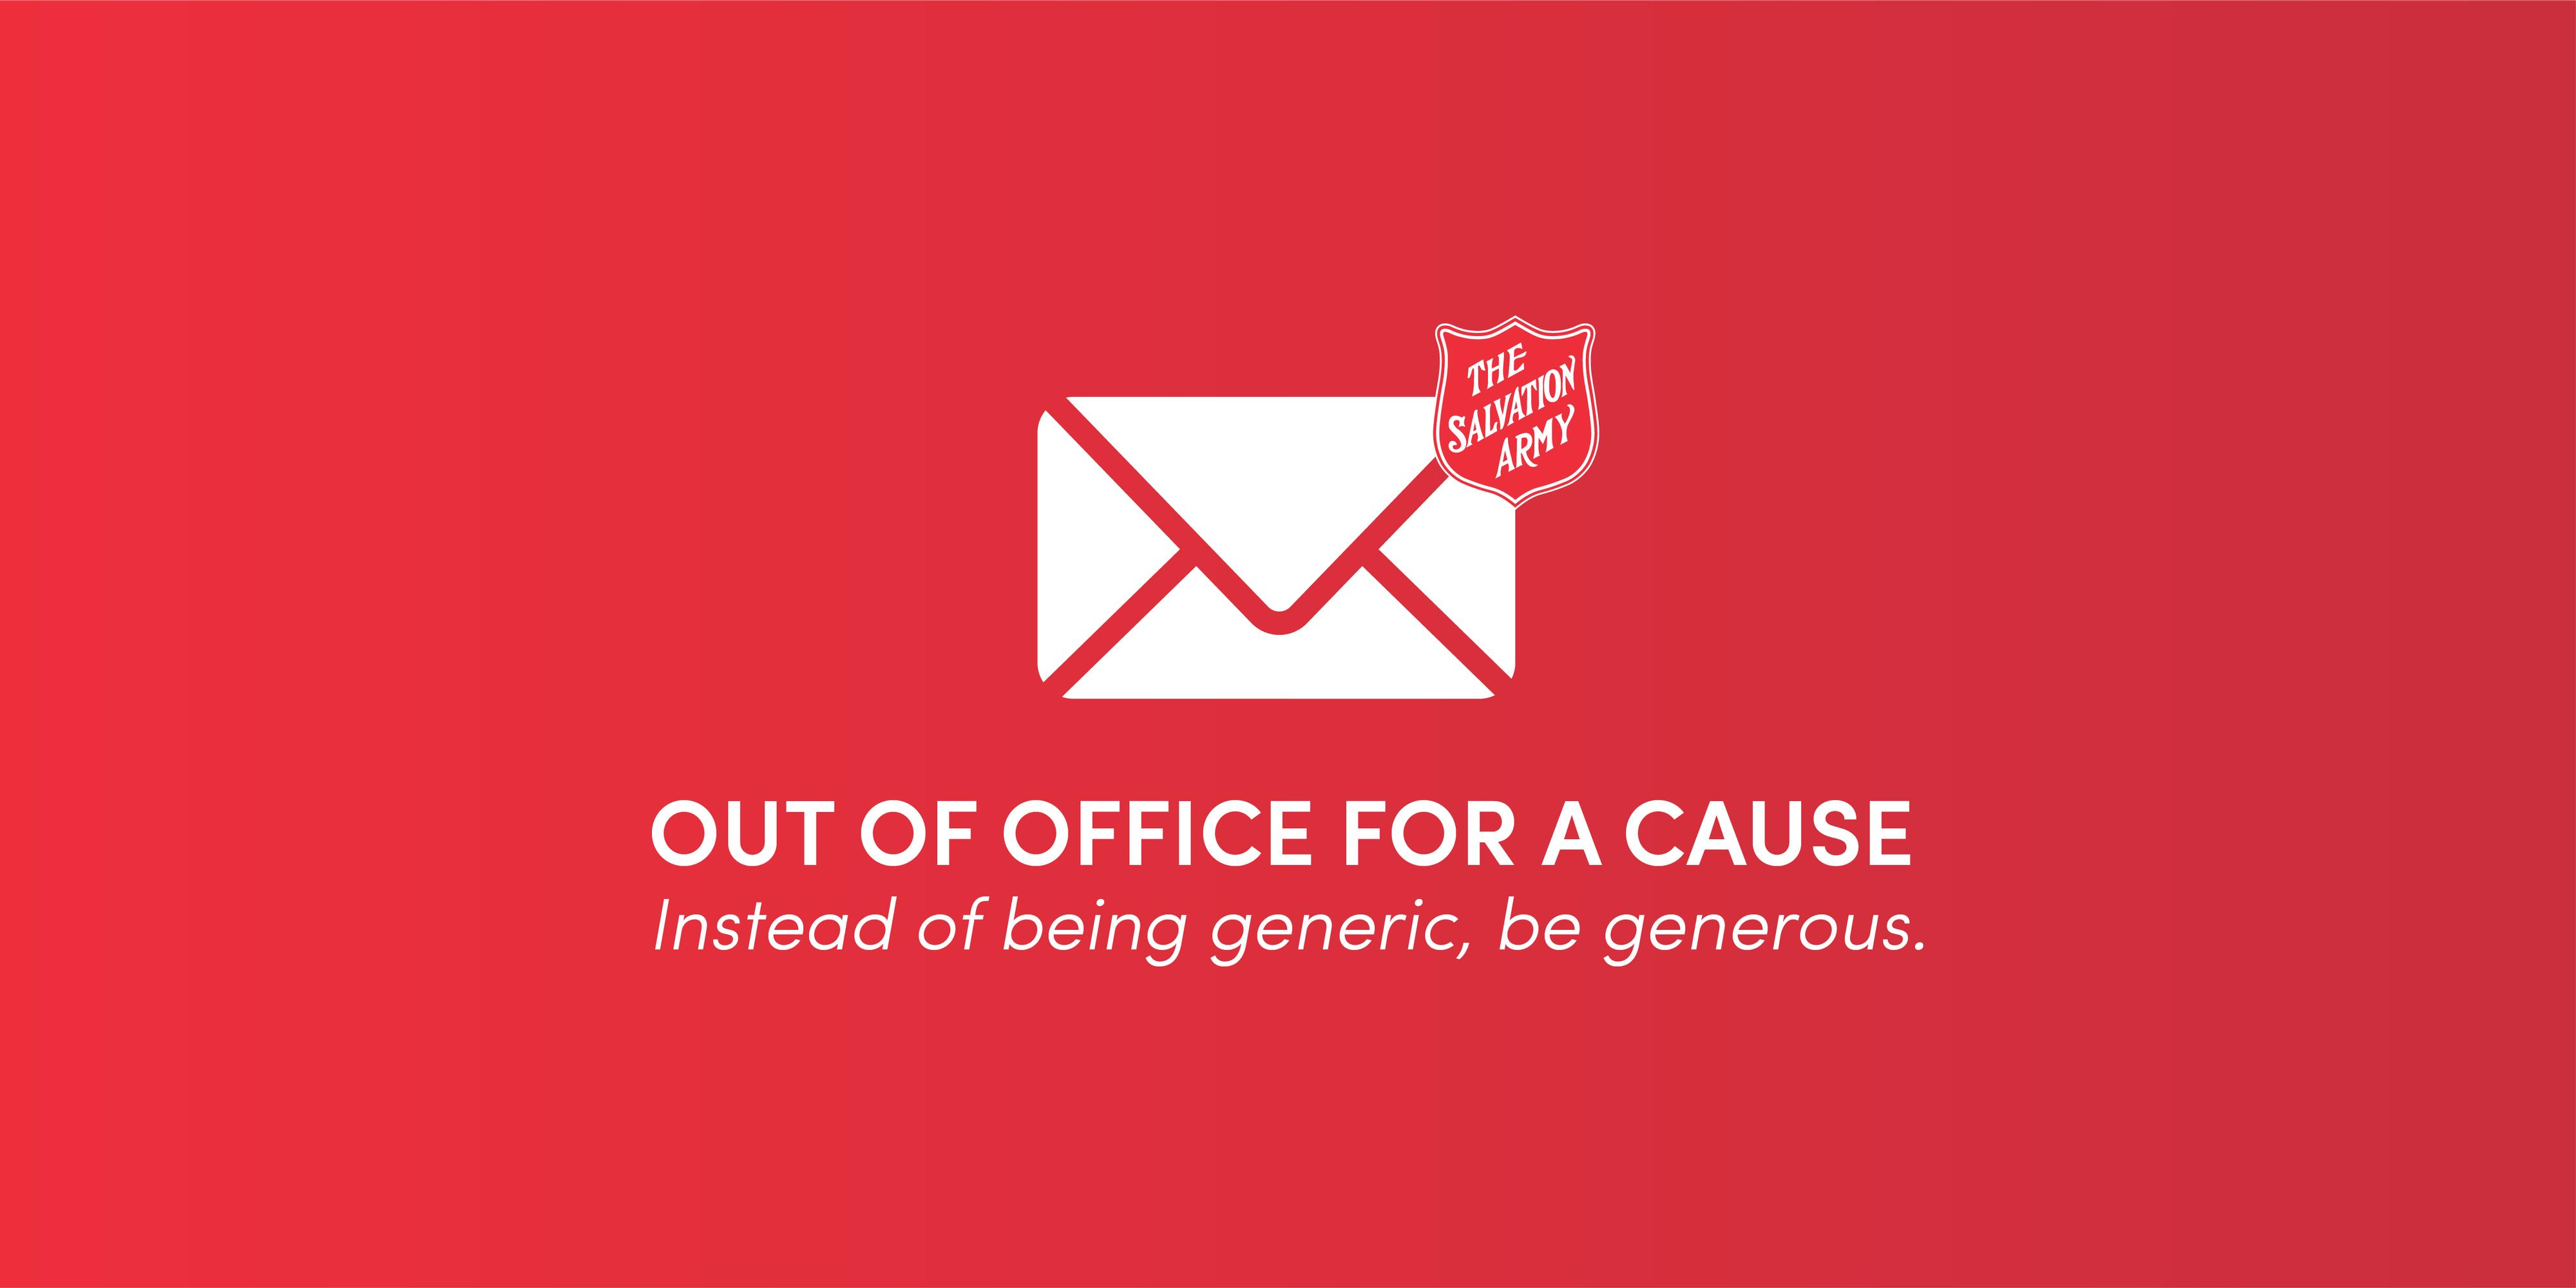 Out of Office for a Cause